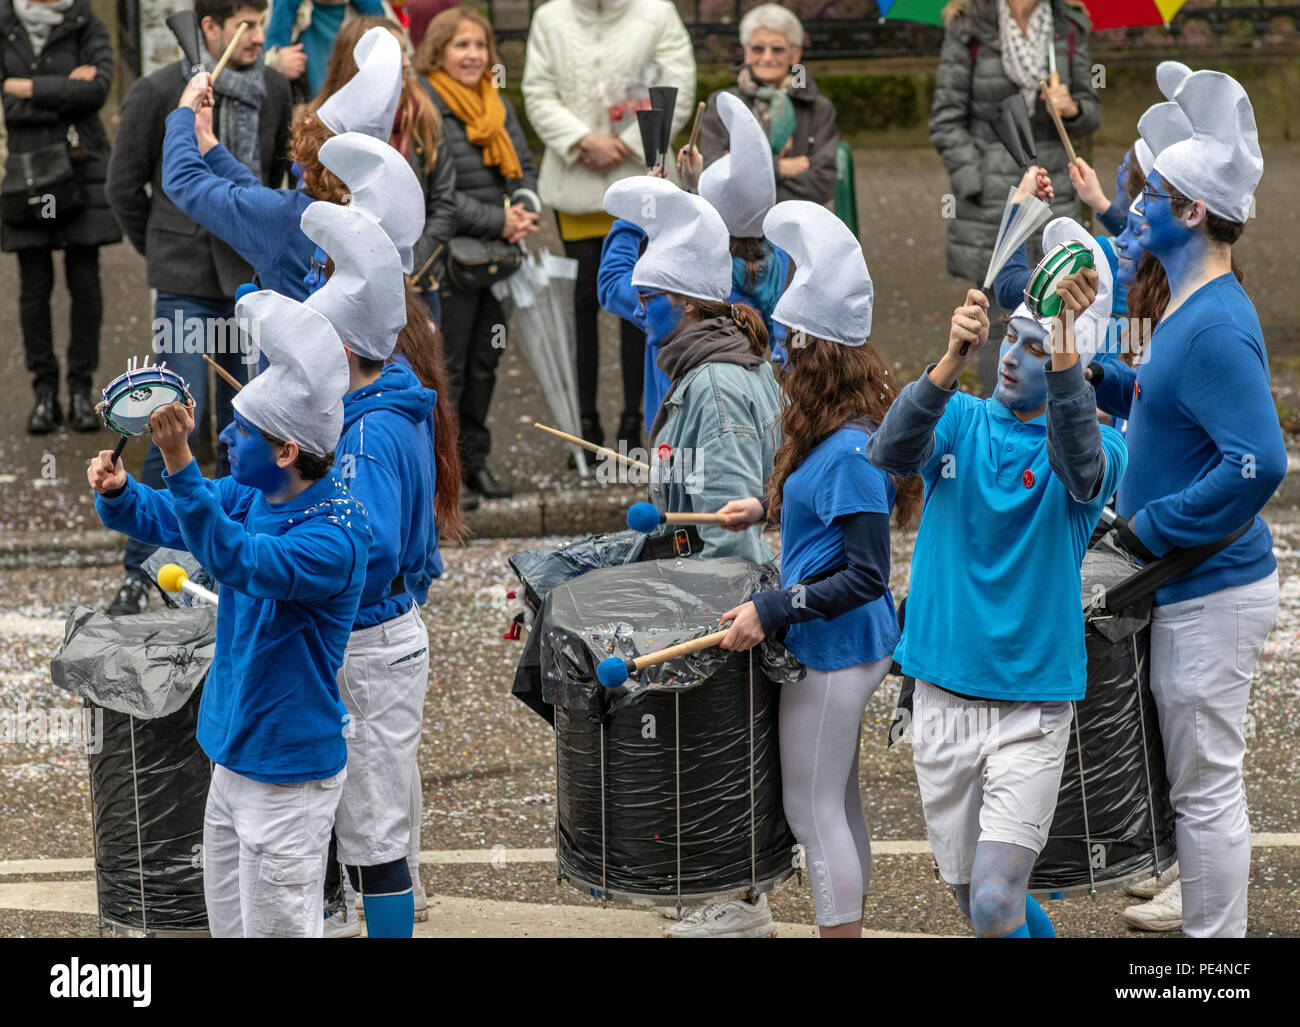 Musicians dressed as Smurfs, marching band, Strasbourg carnival parade, Alsace, France, Europe, - Stock Image